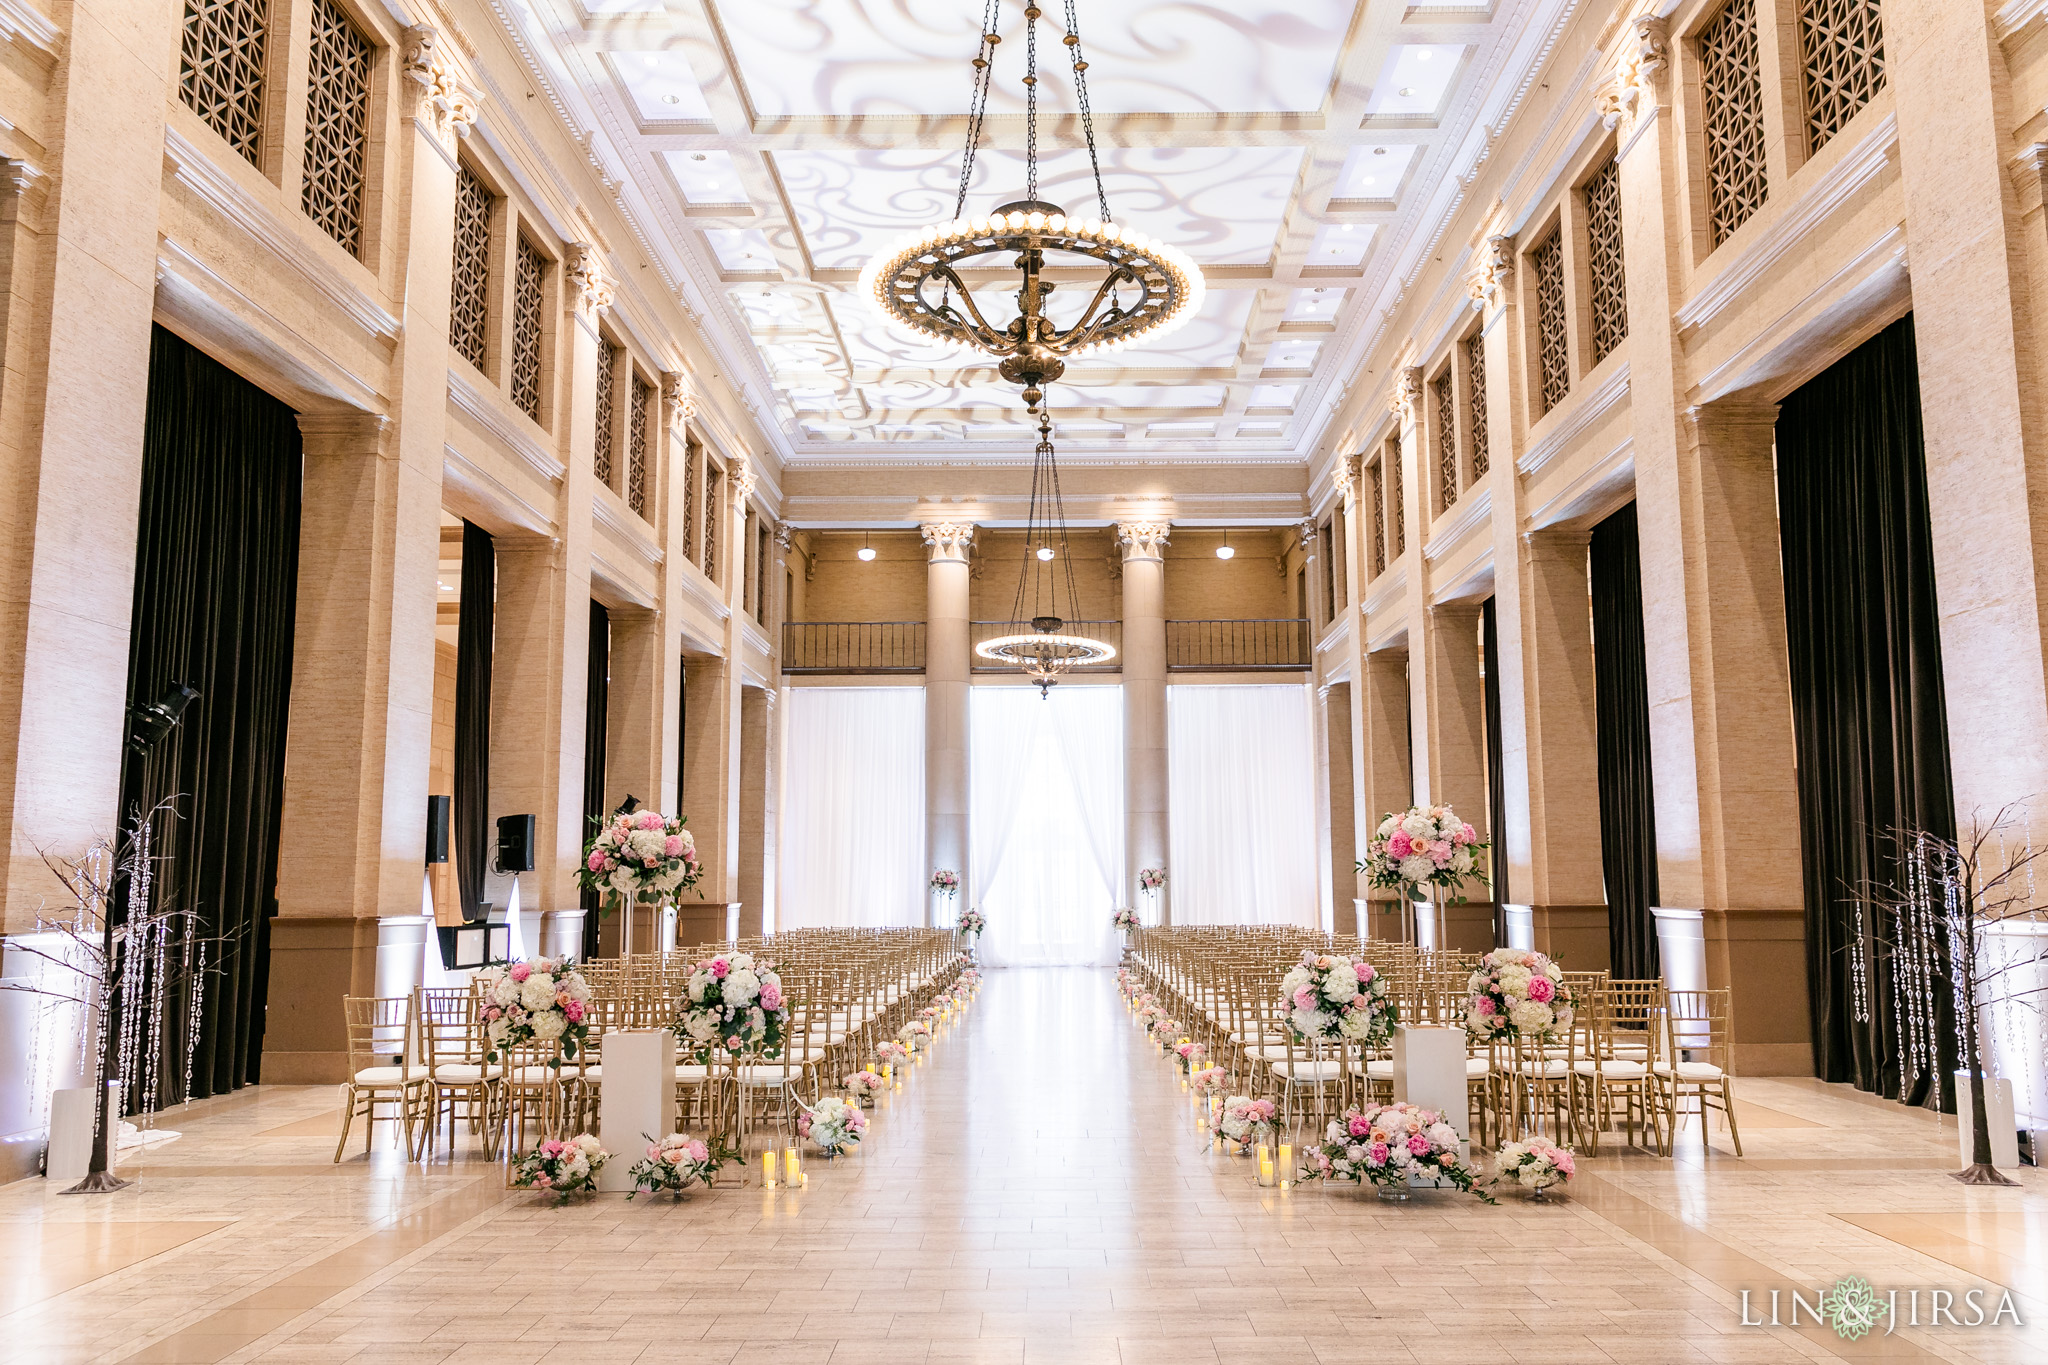 16 Bently Reserve San Francisco Destination Wedding Photographer